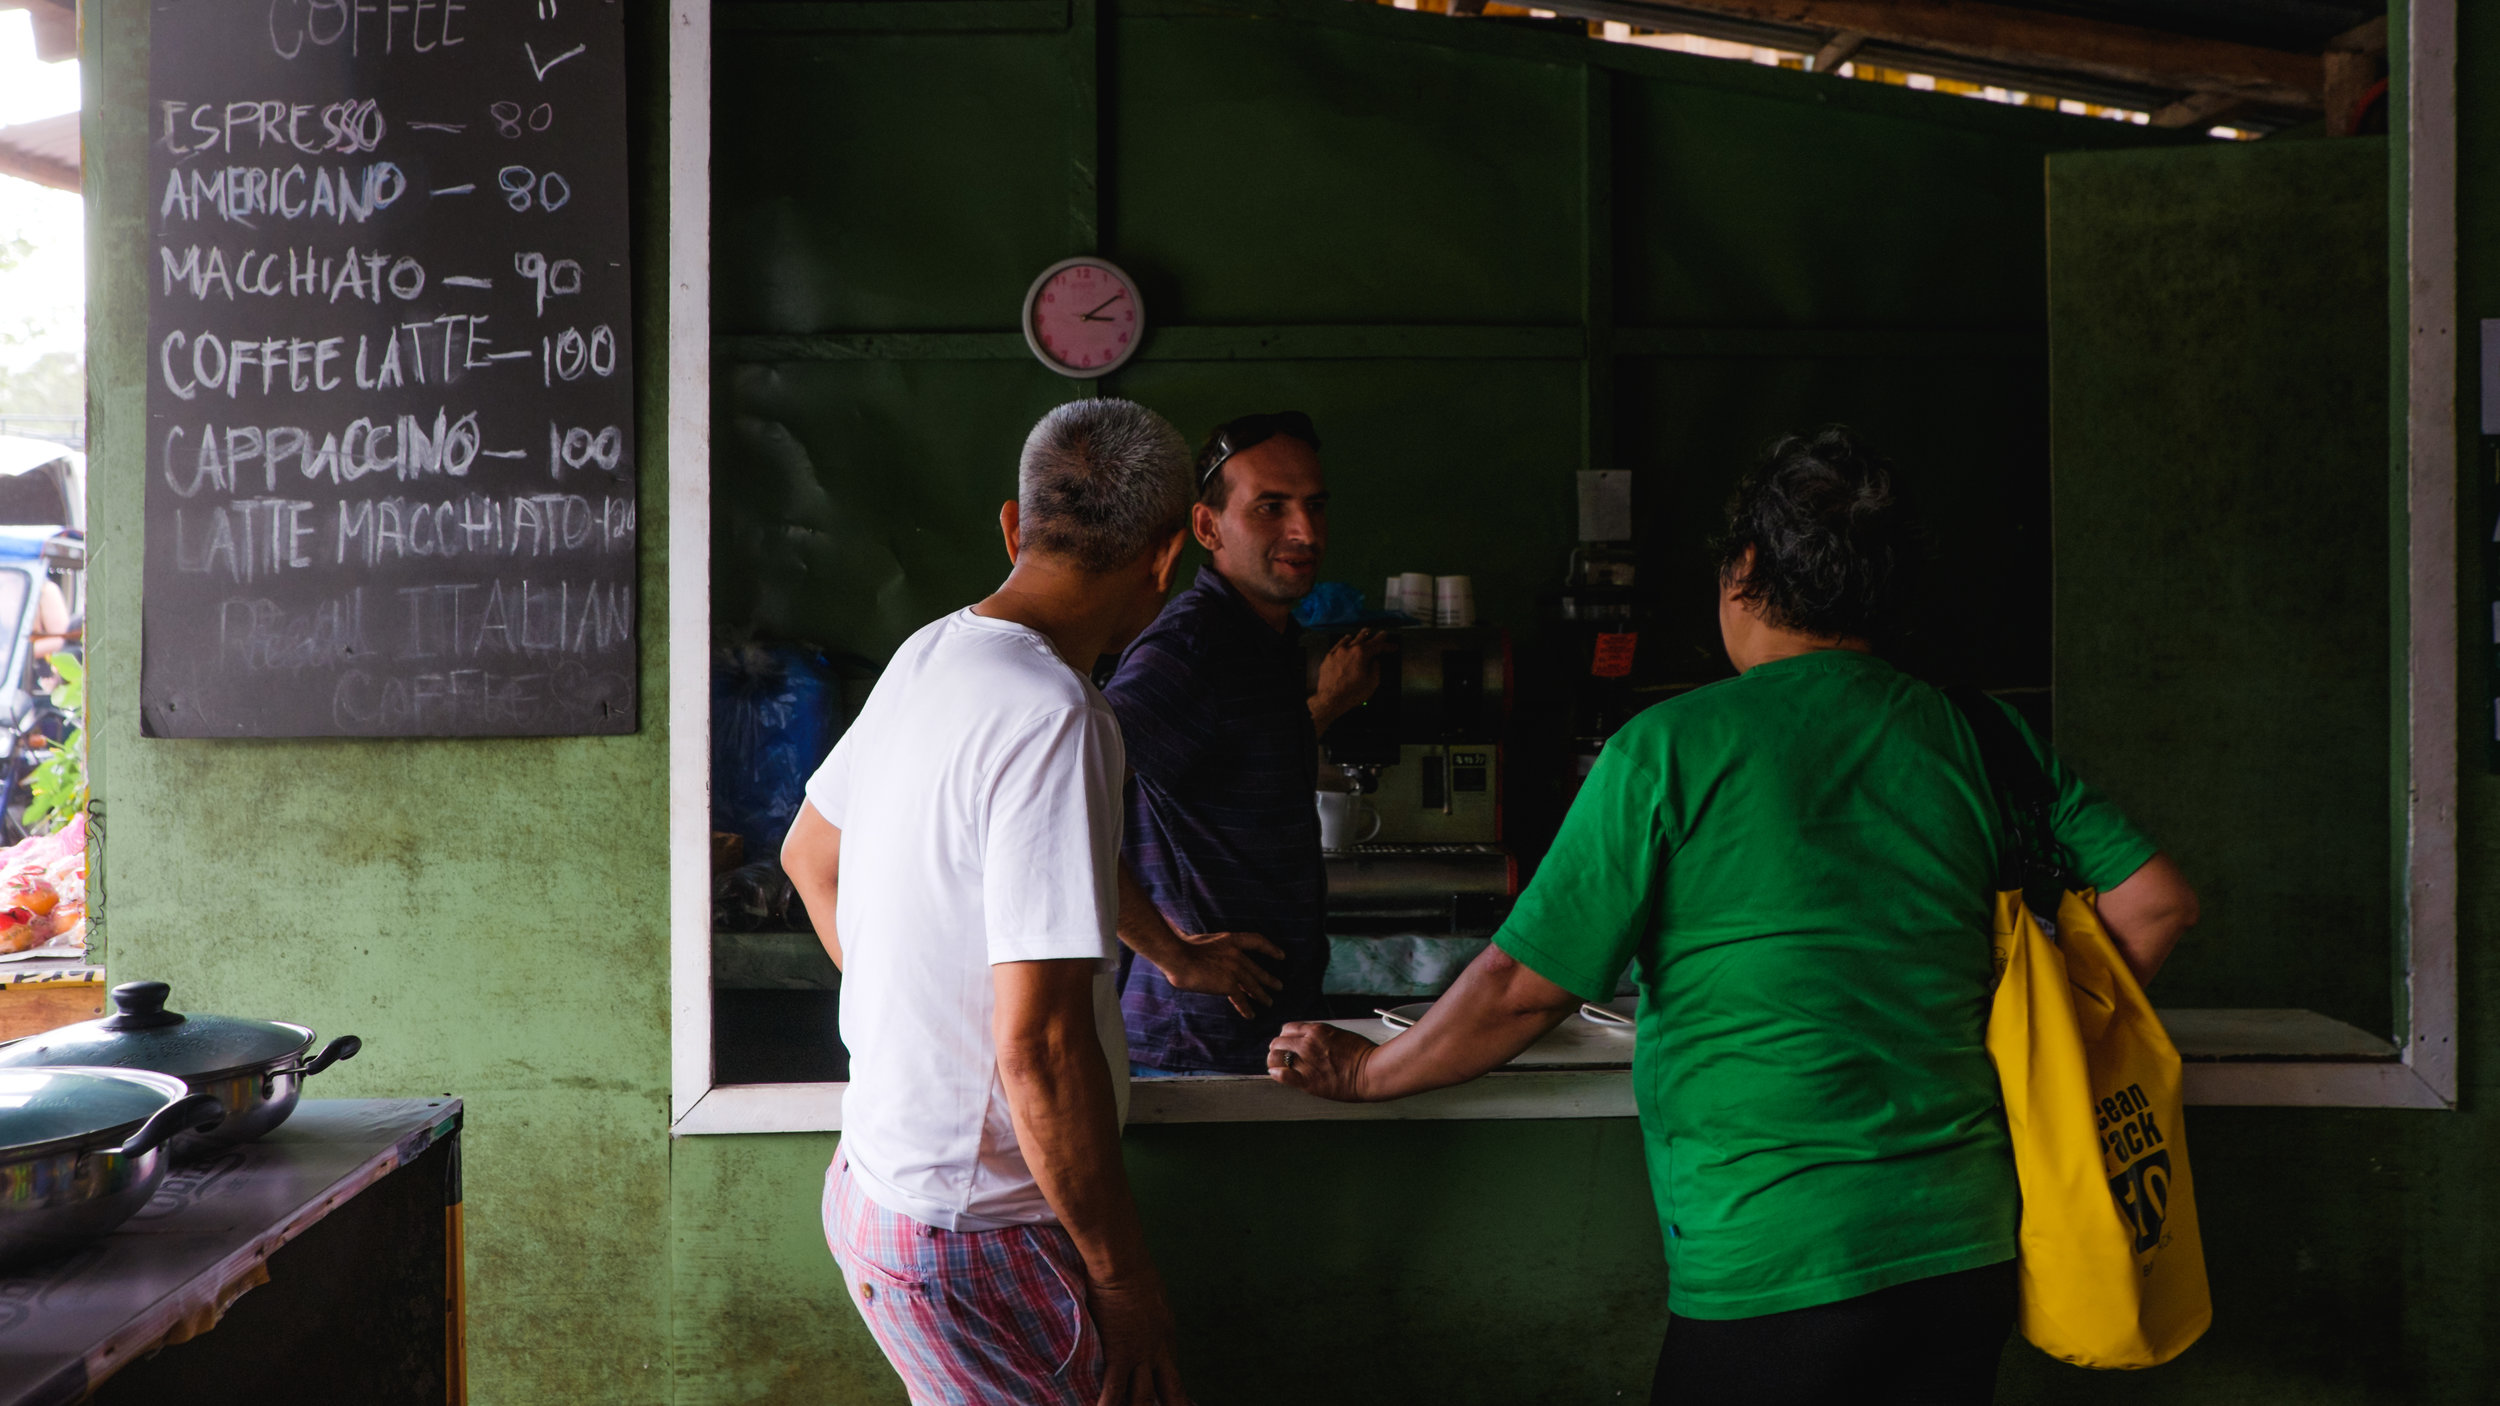 My parents getting coffee. The prices are in peso (Philippines currency).